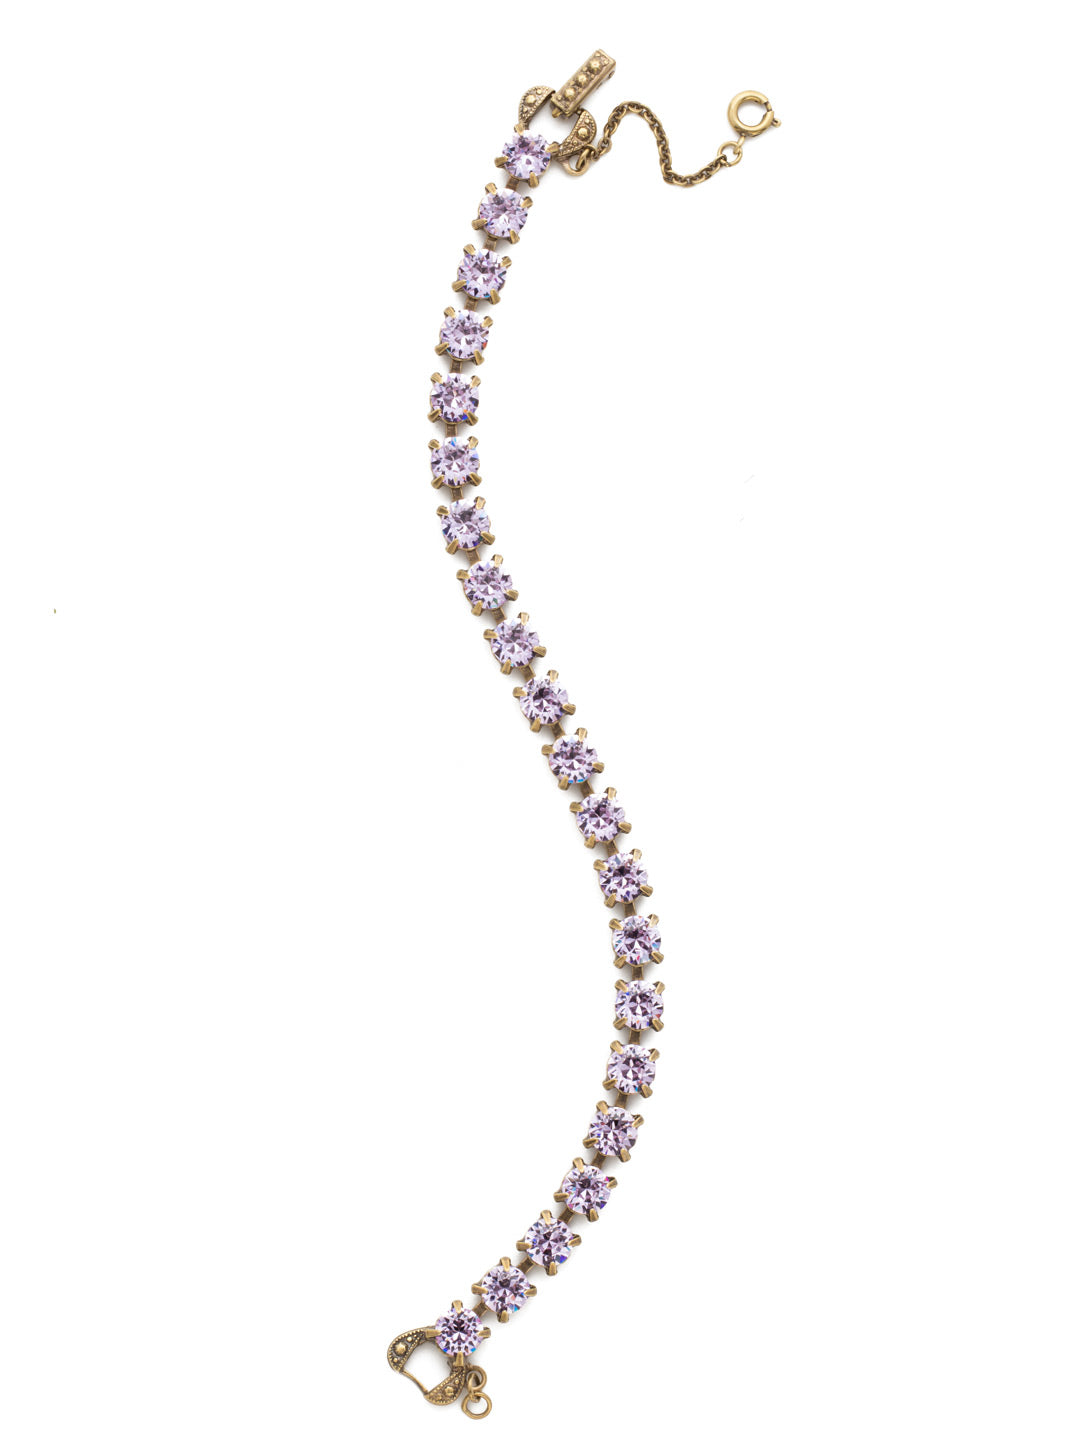 Repeating Round Tennis Bracelet - BCZ36AGVI